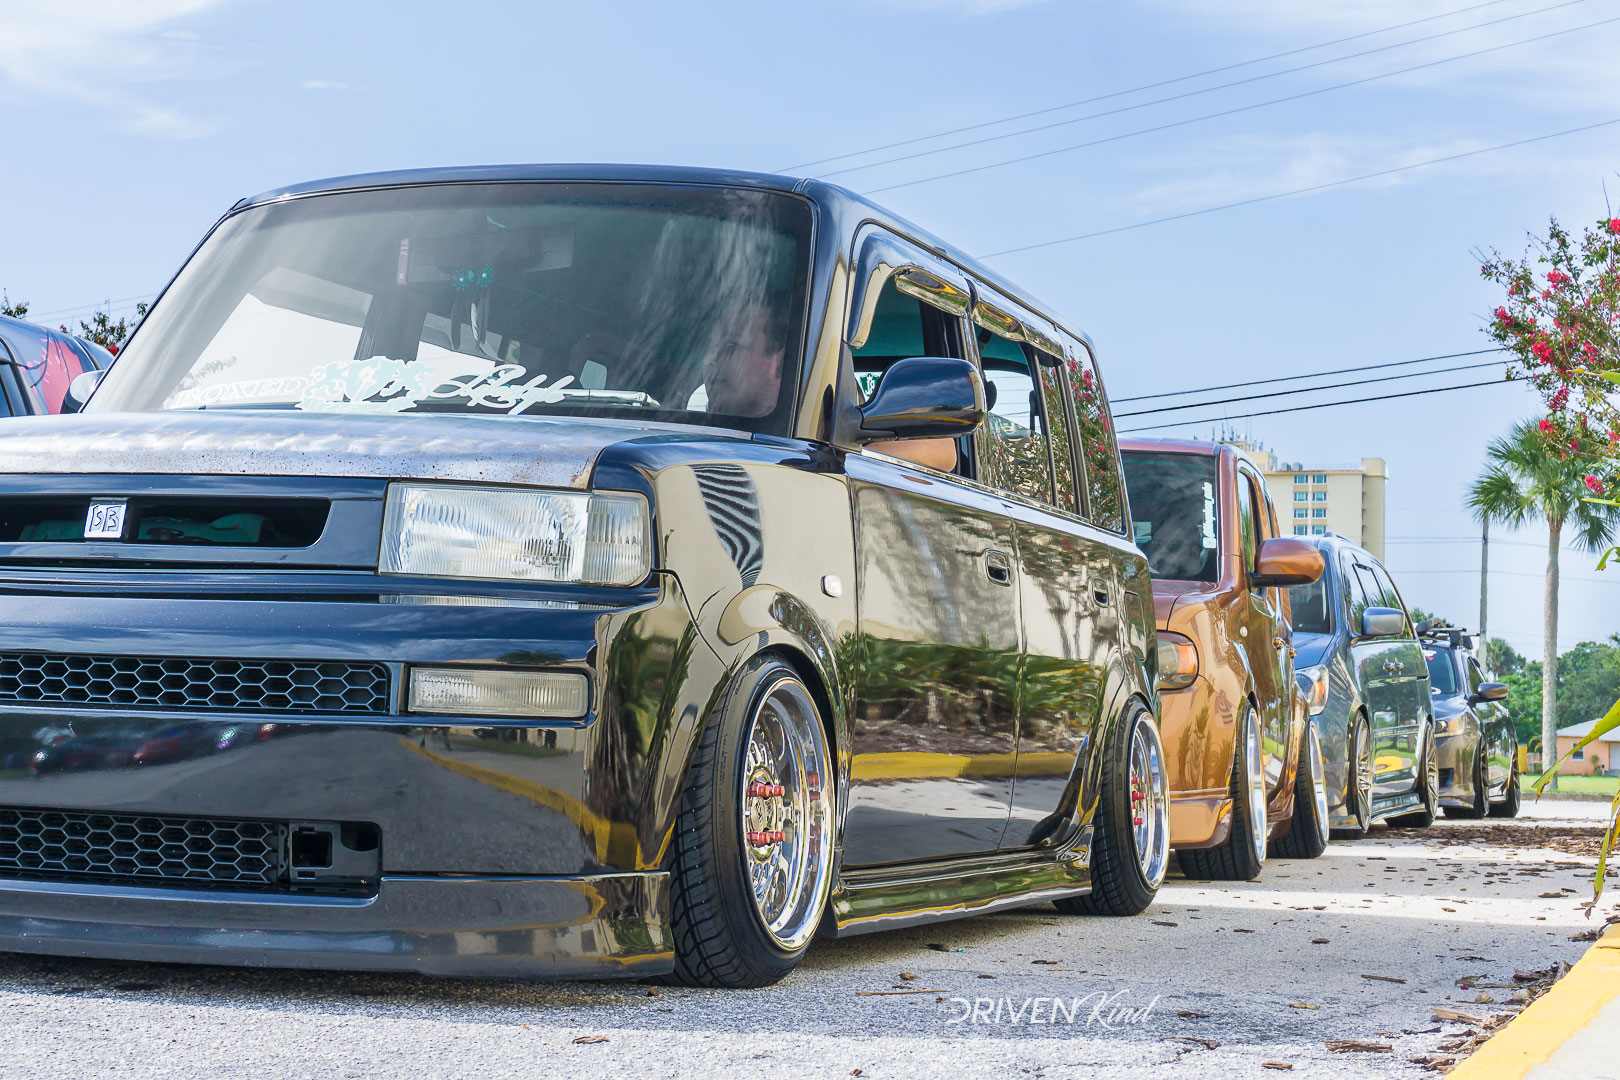 Scion XB Daily Driven Inc. Presents Florida's Finest Melbourne FL Auditorium coverage by The Driven Kind